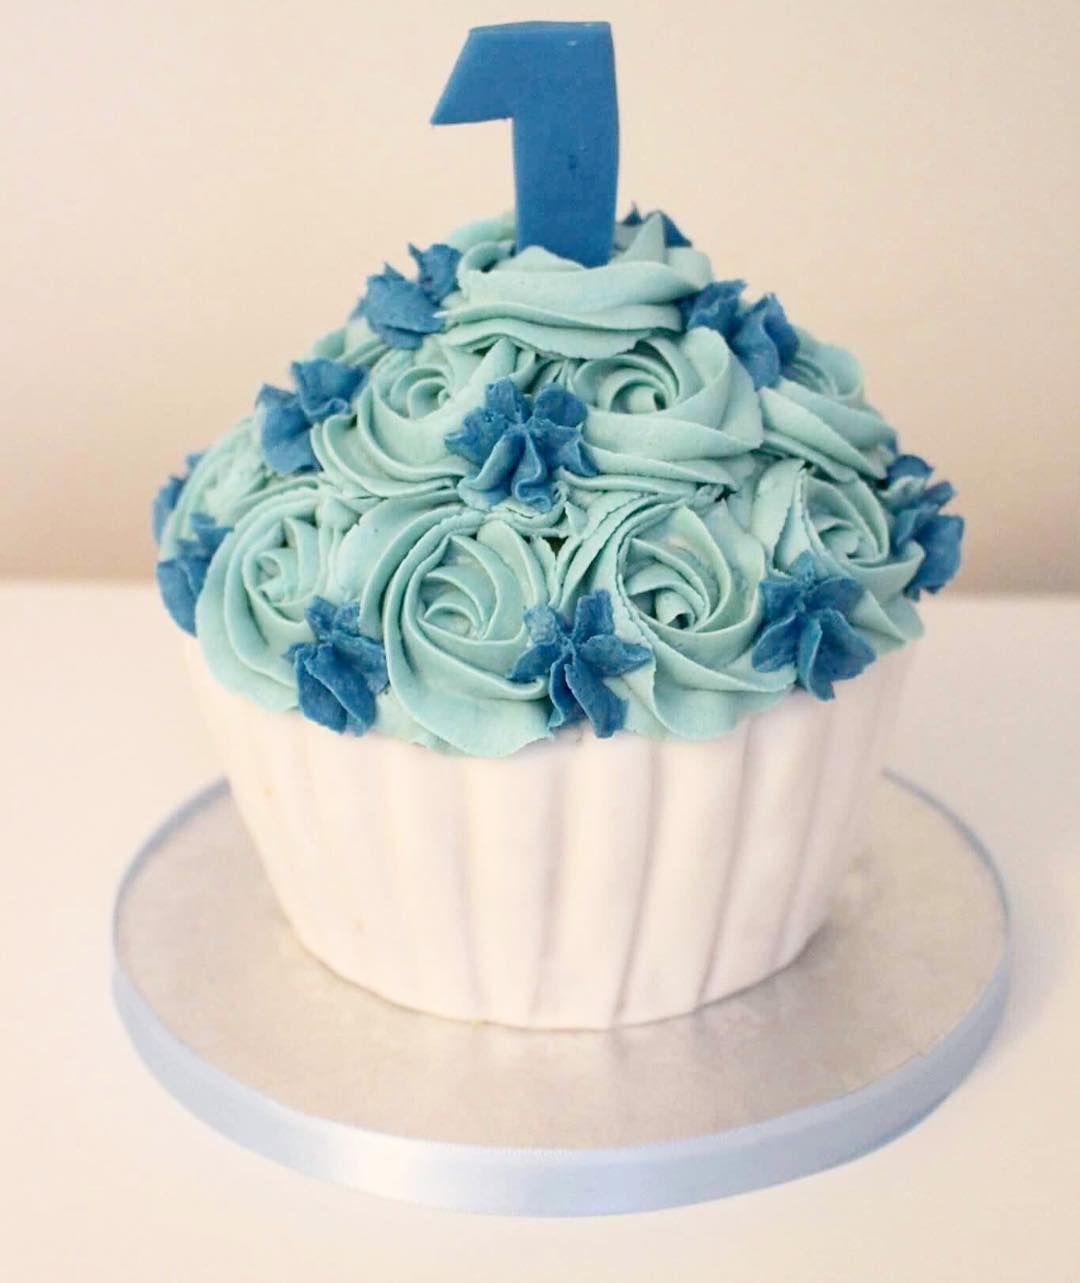 A Giant Cupcake For A Little Boys 1st Birthday Smash